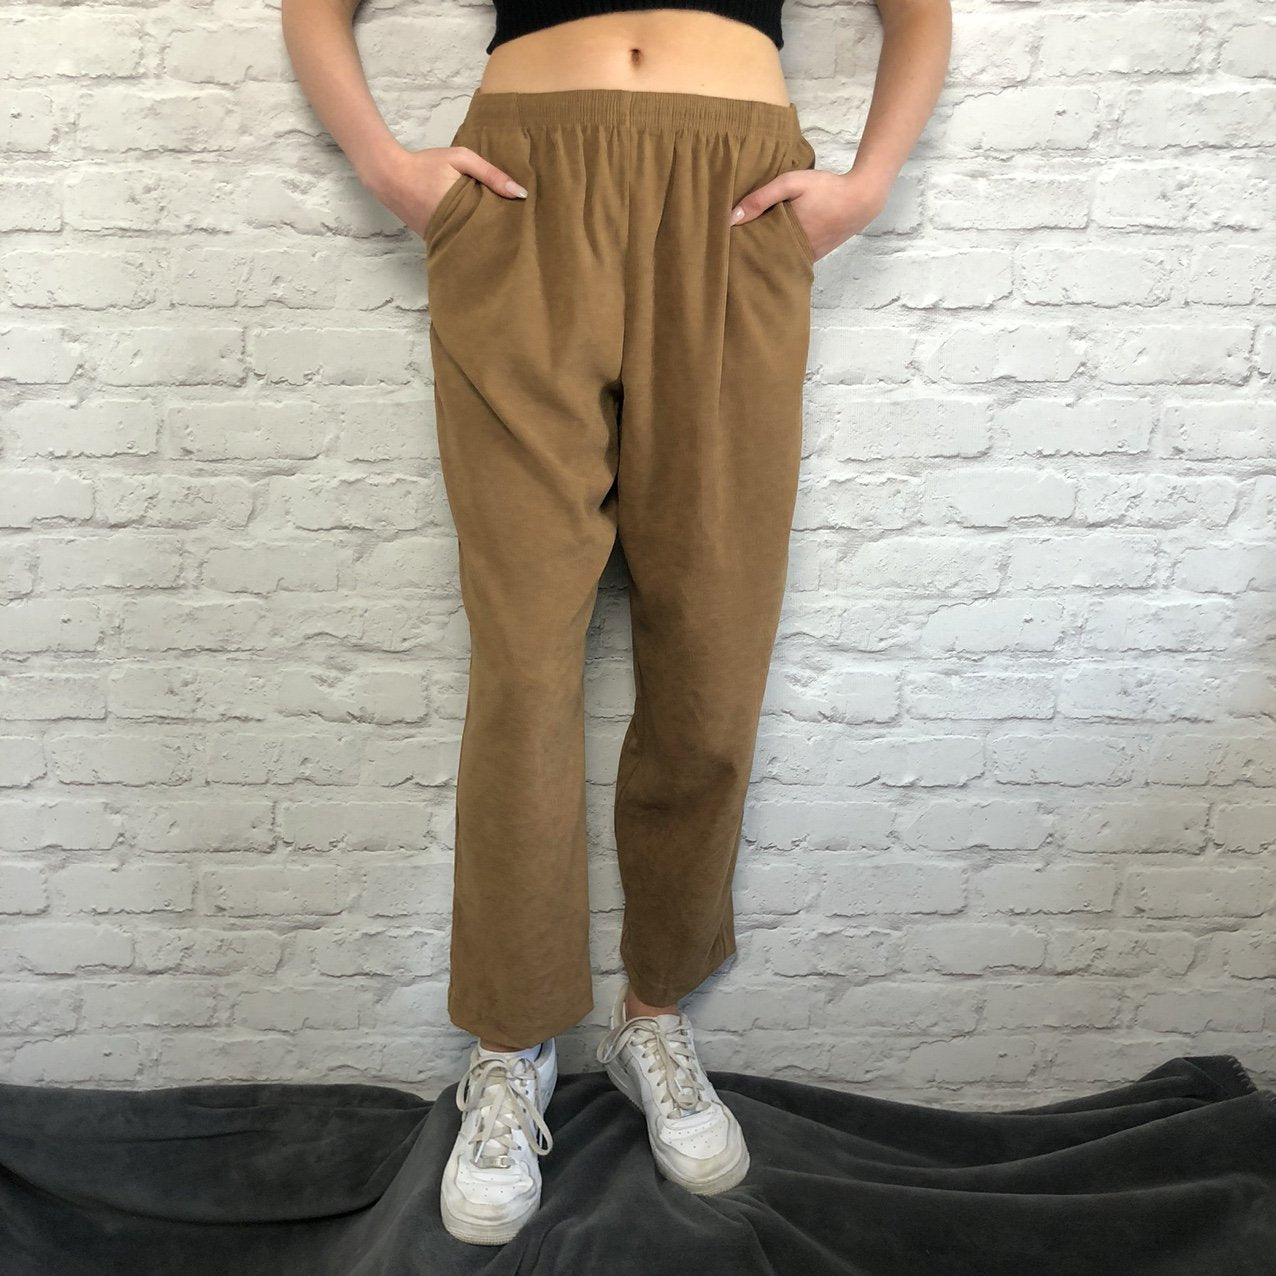 Ladies Vintage Lightweight Relaxed Trousers Faux Suede, Tan - Small - Vintique Clothing